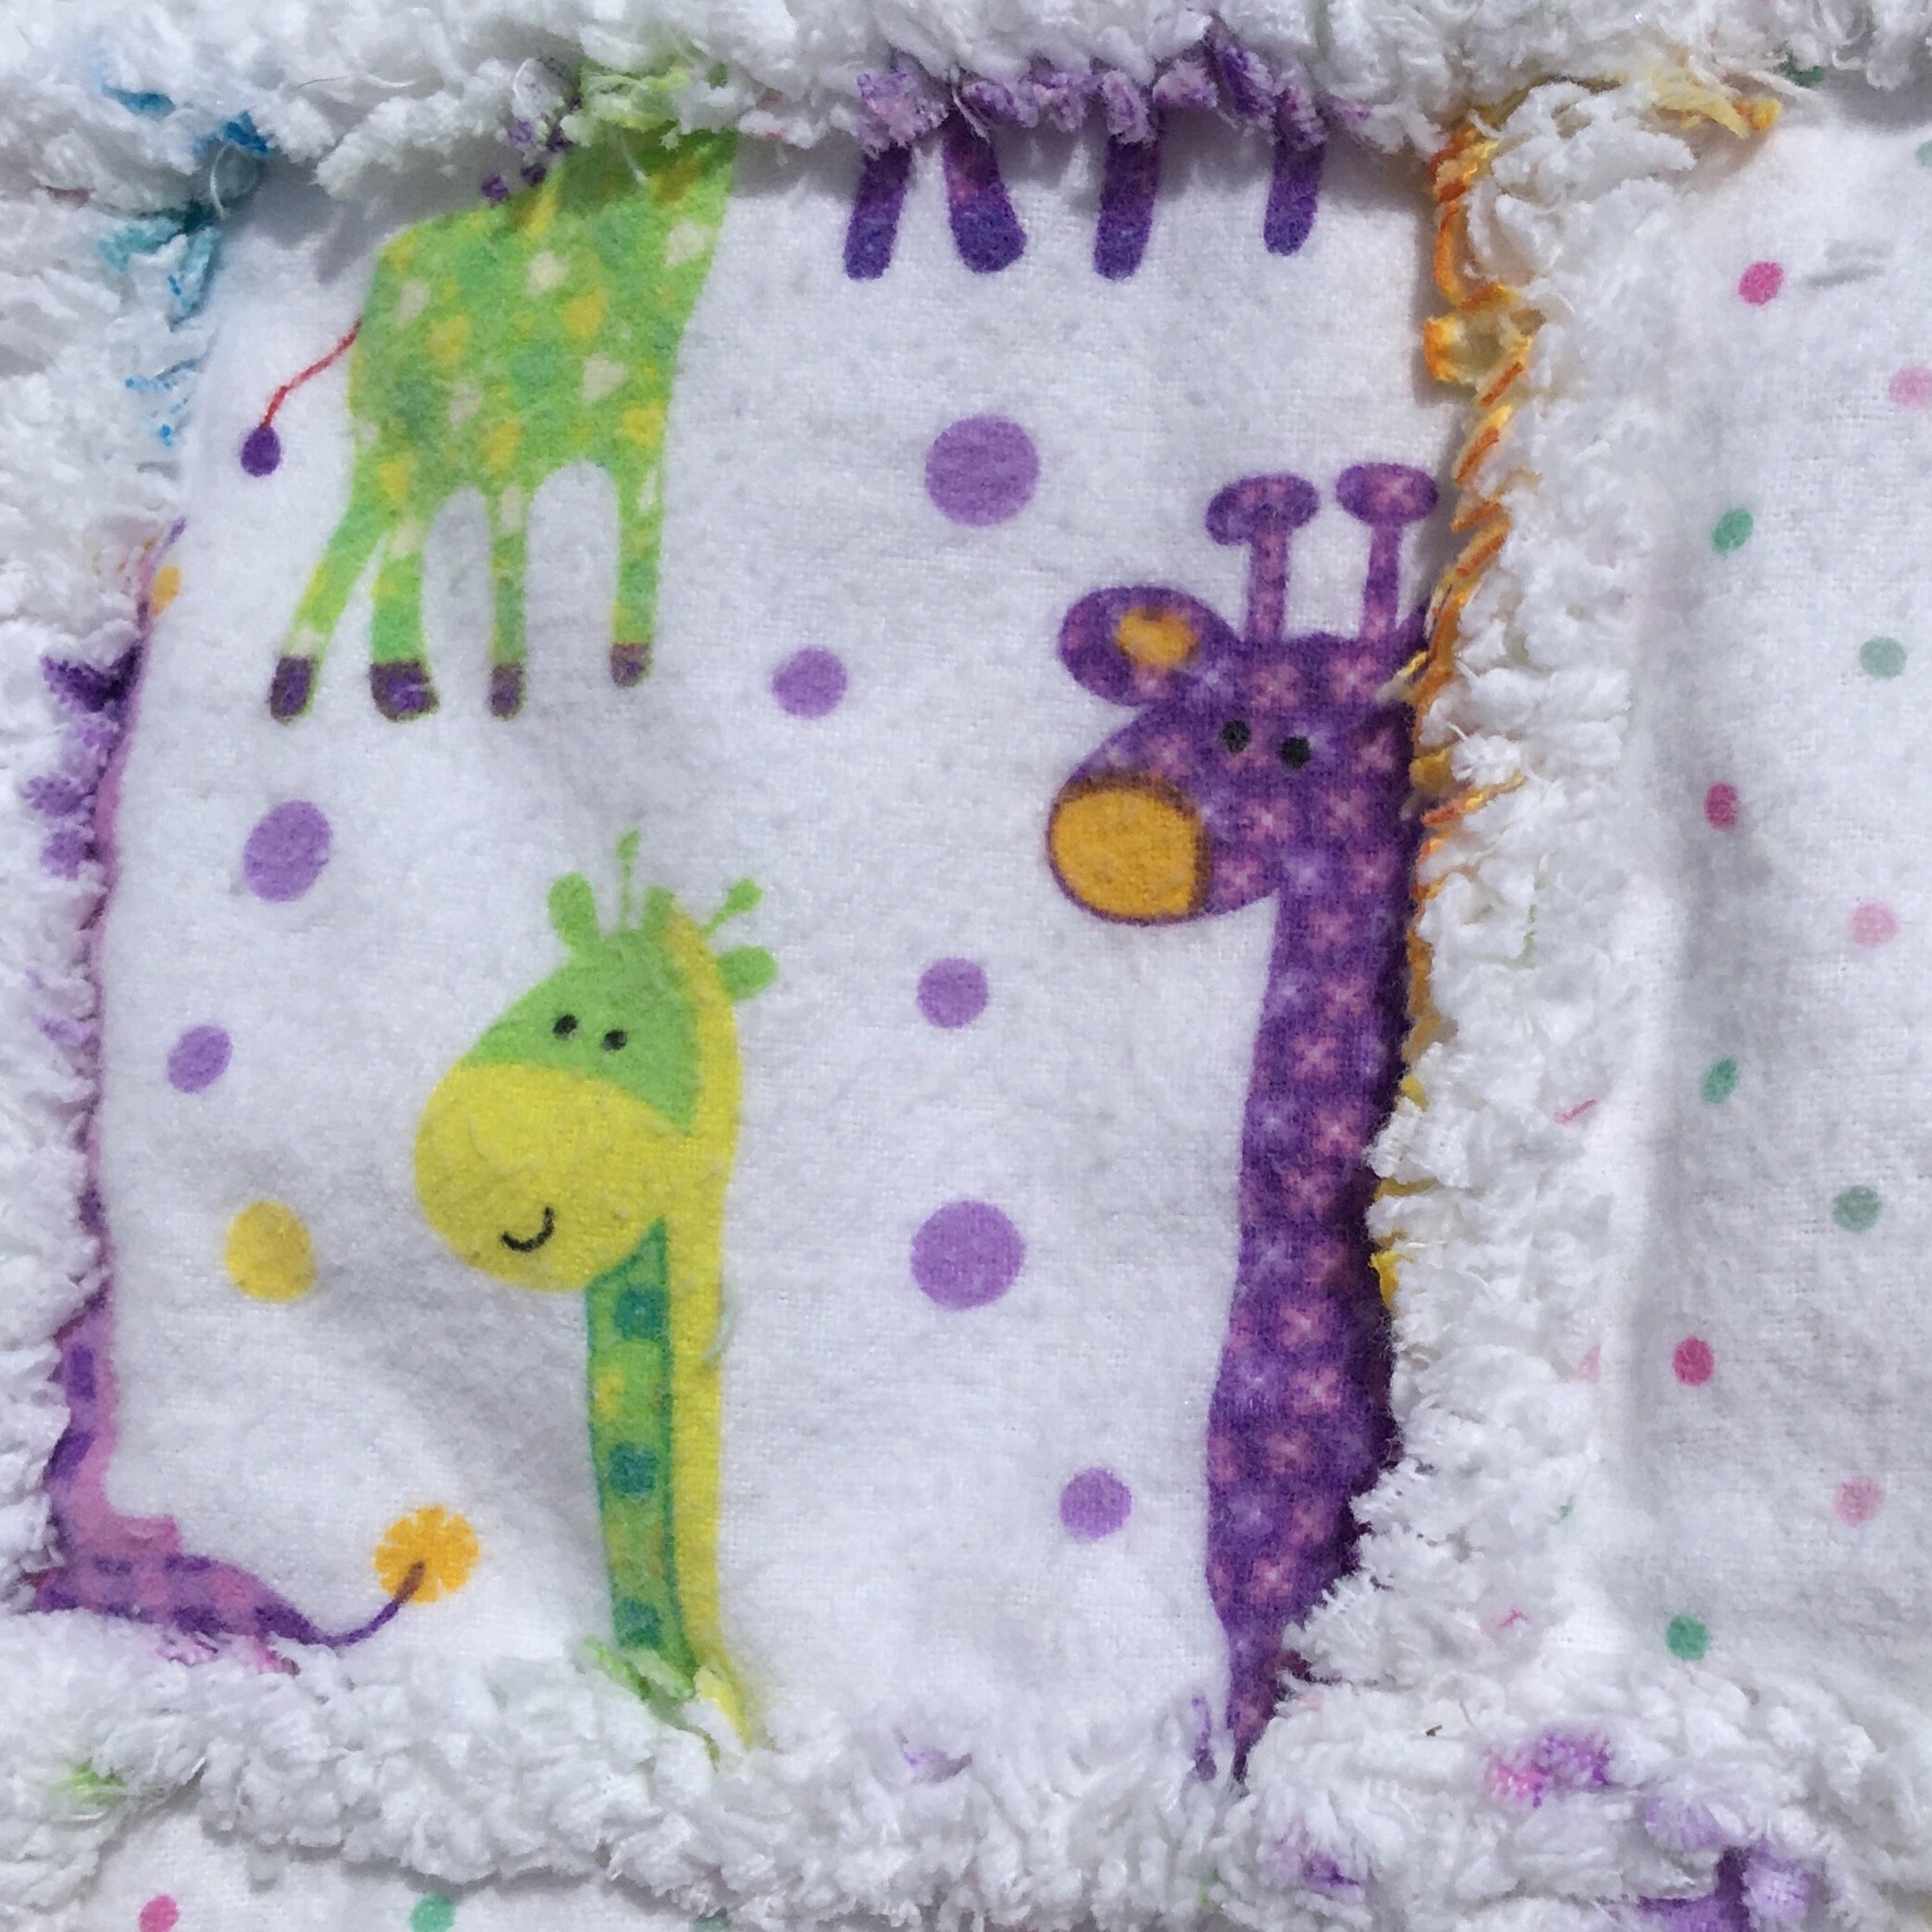 Colorful giraffes, bright multi-colored polka dots, and a white square border make tis a dazzling baby quilt